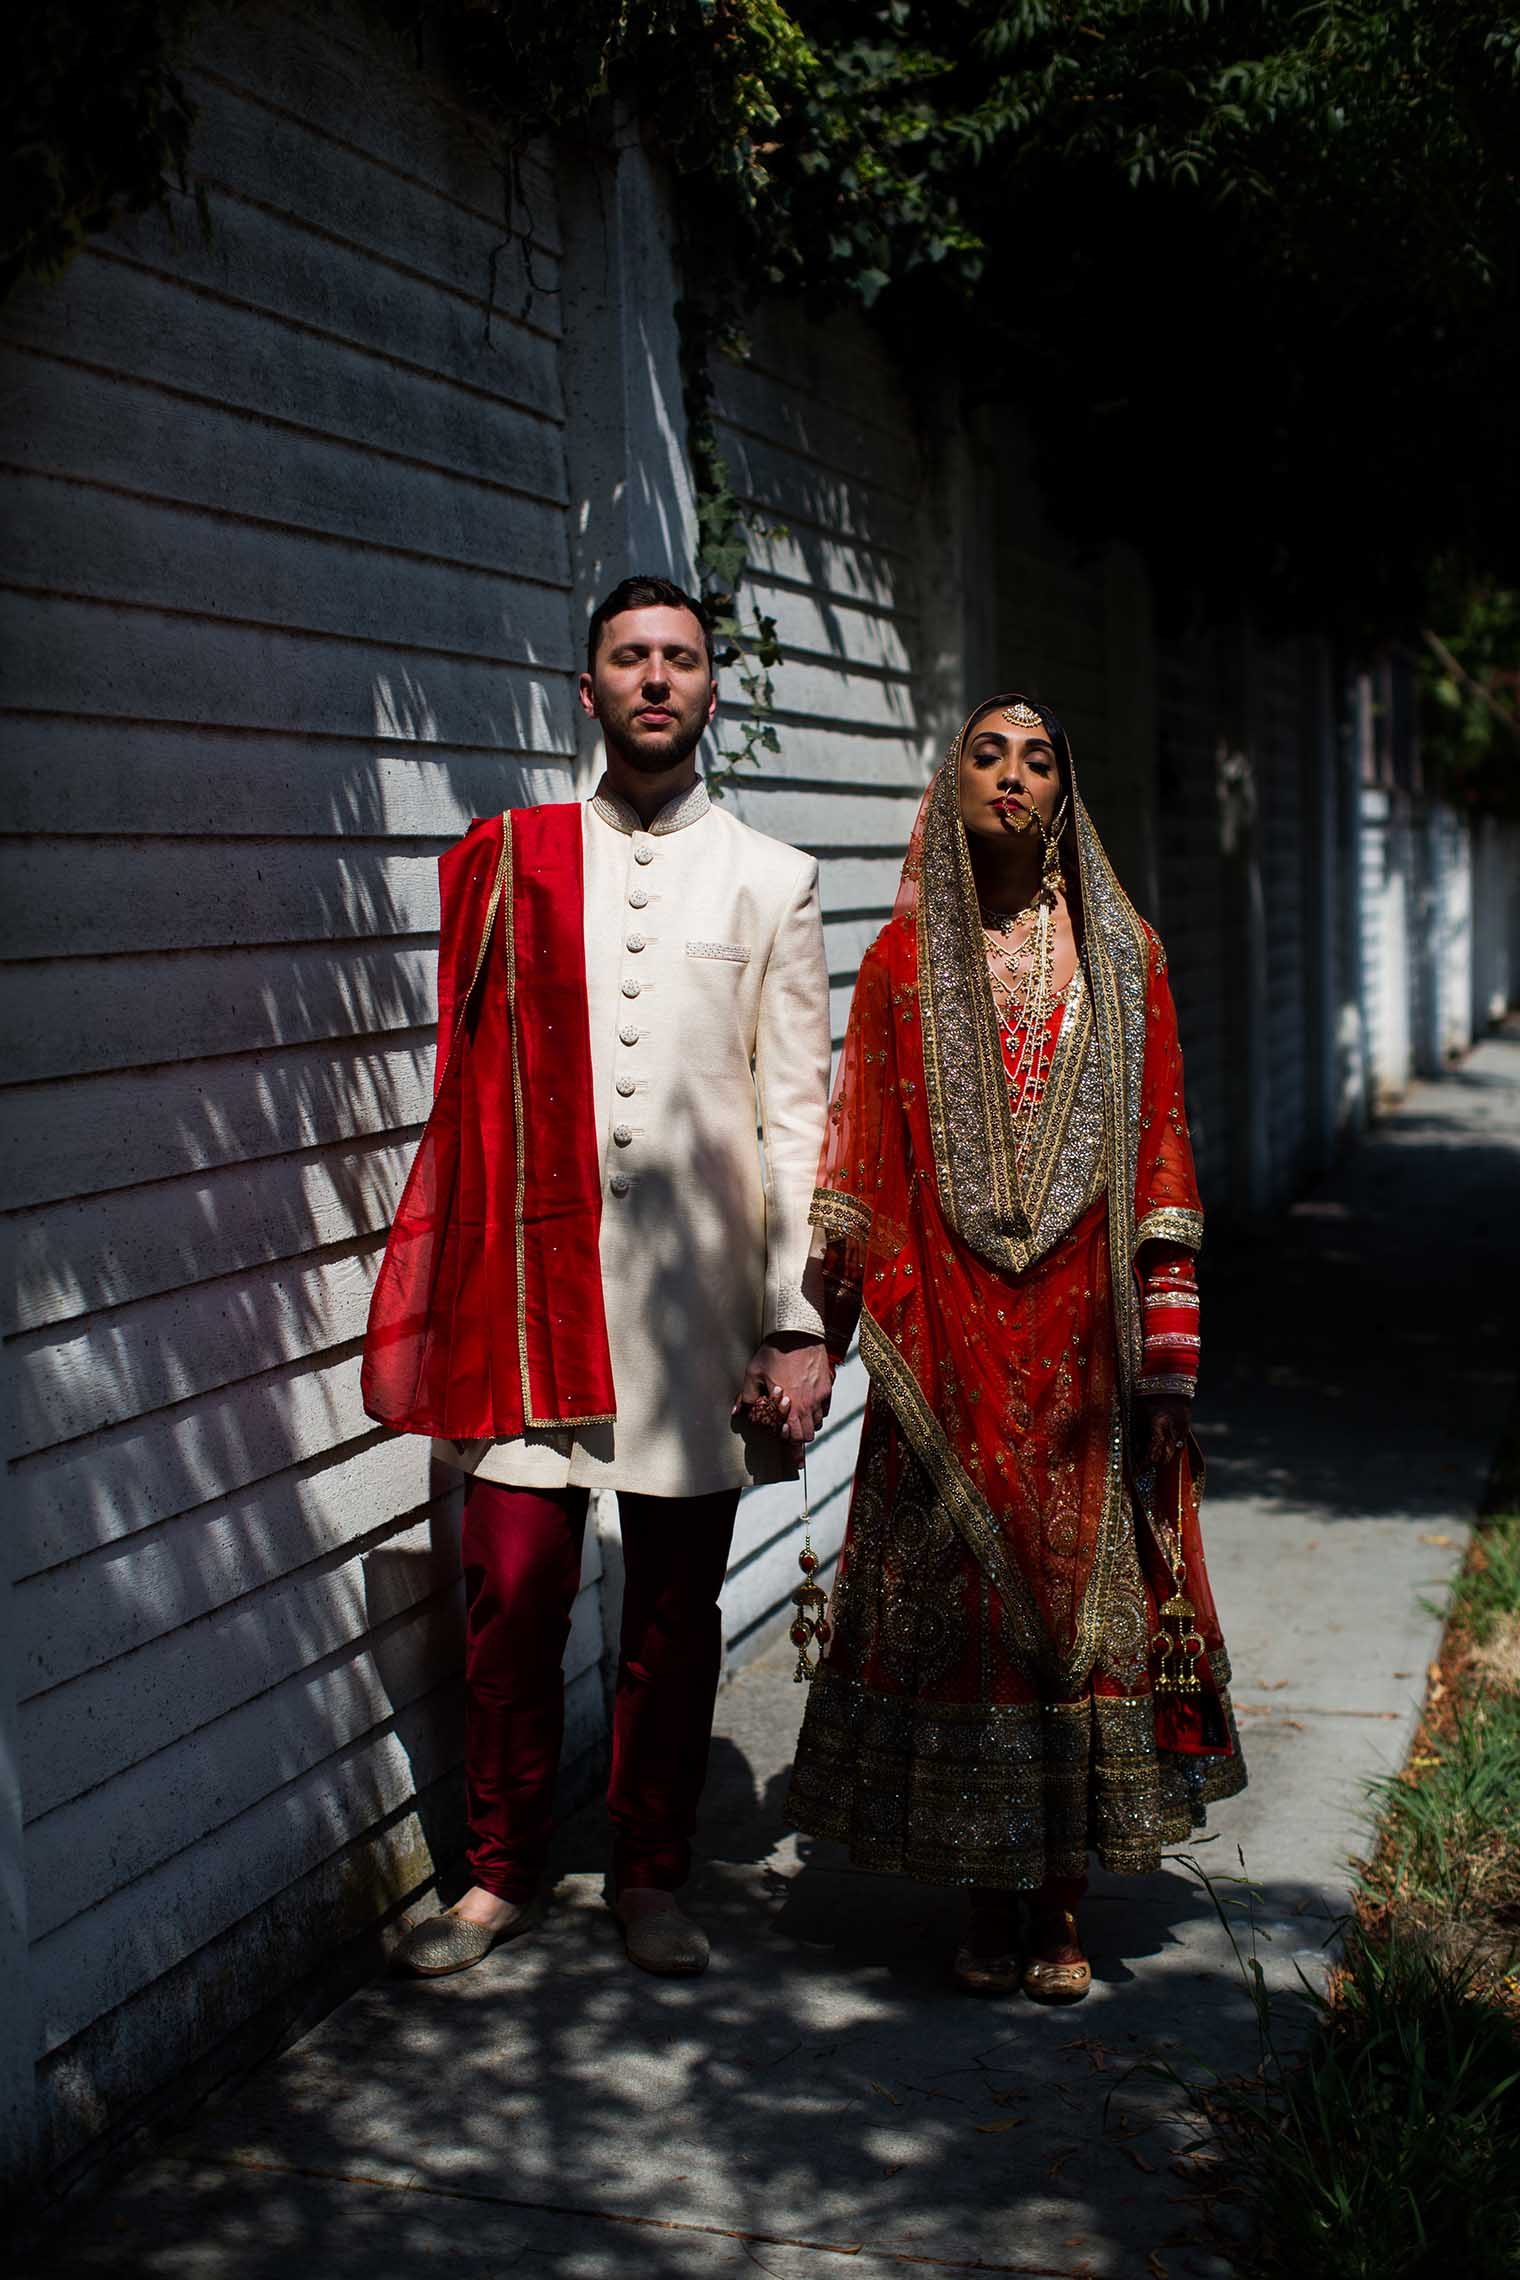 Indian Bride and Groom by San Mateo Wedding Photographer